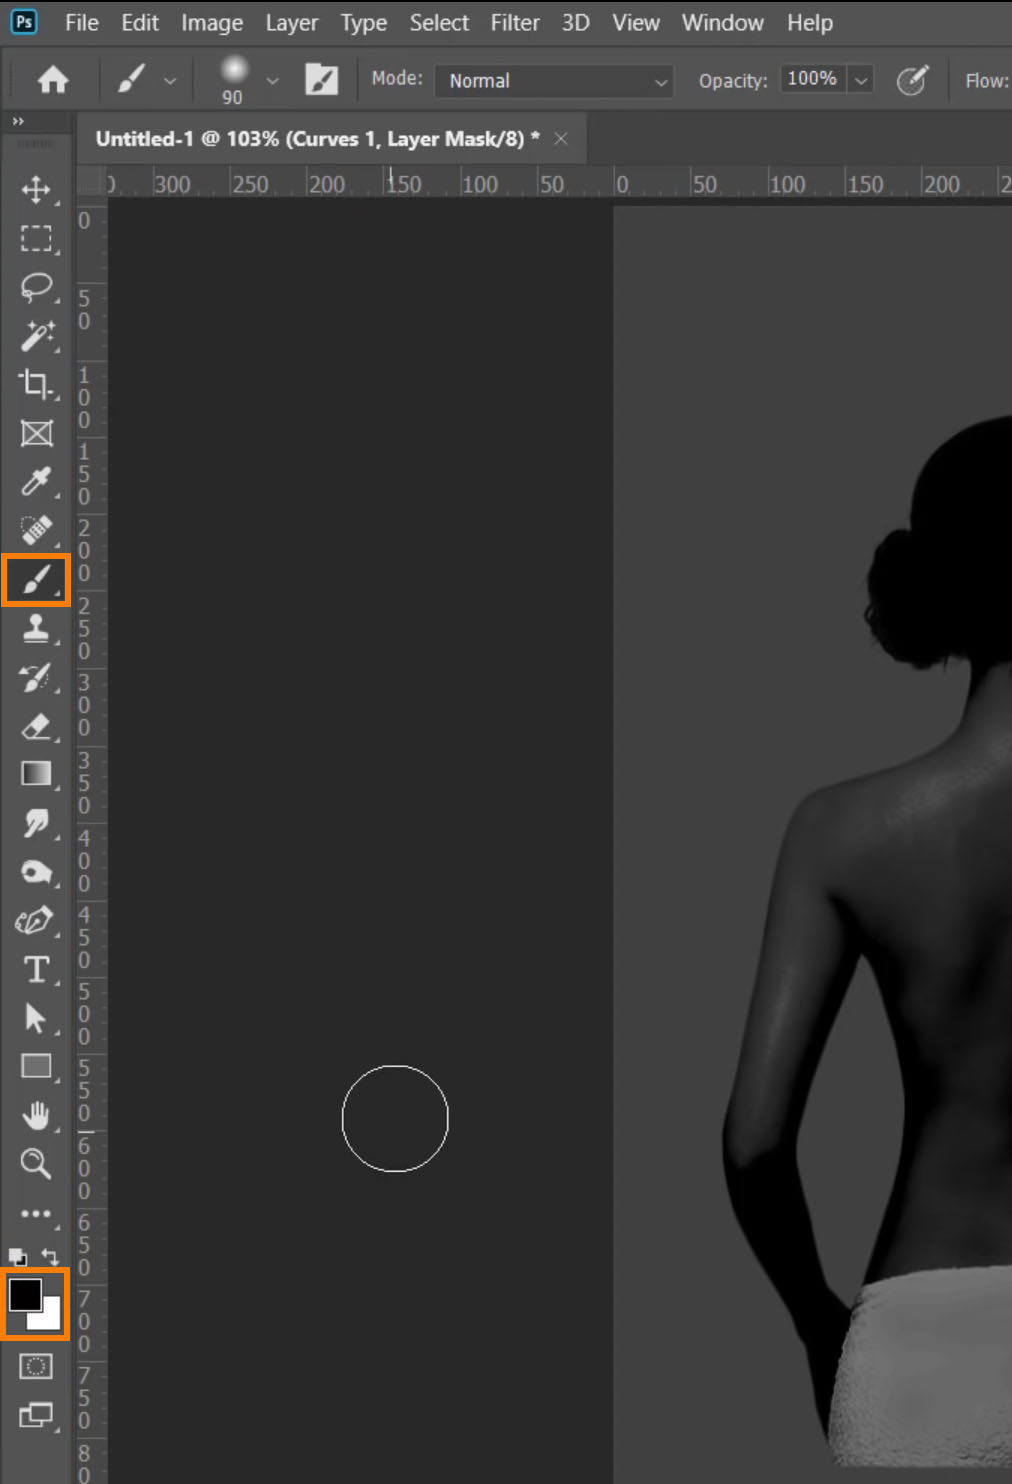 Set black as your Foreground color